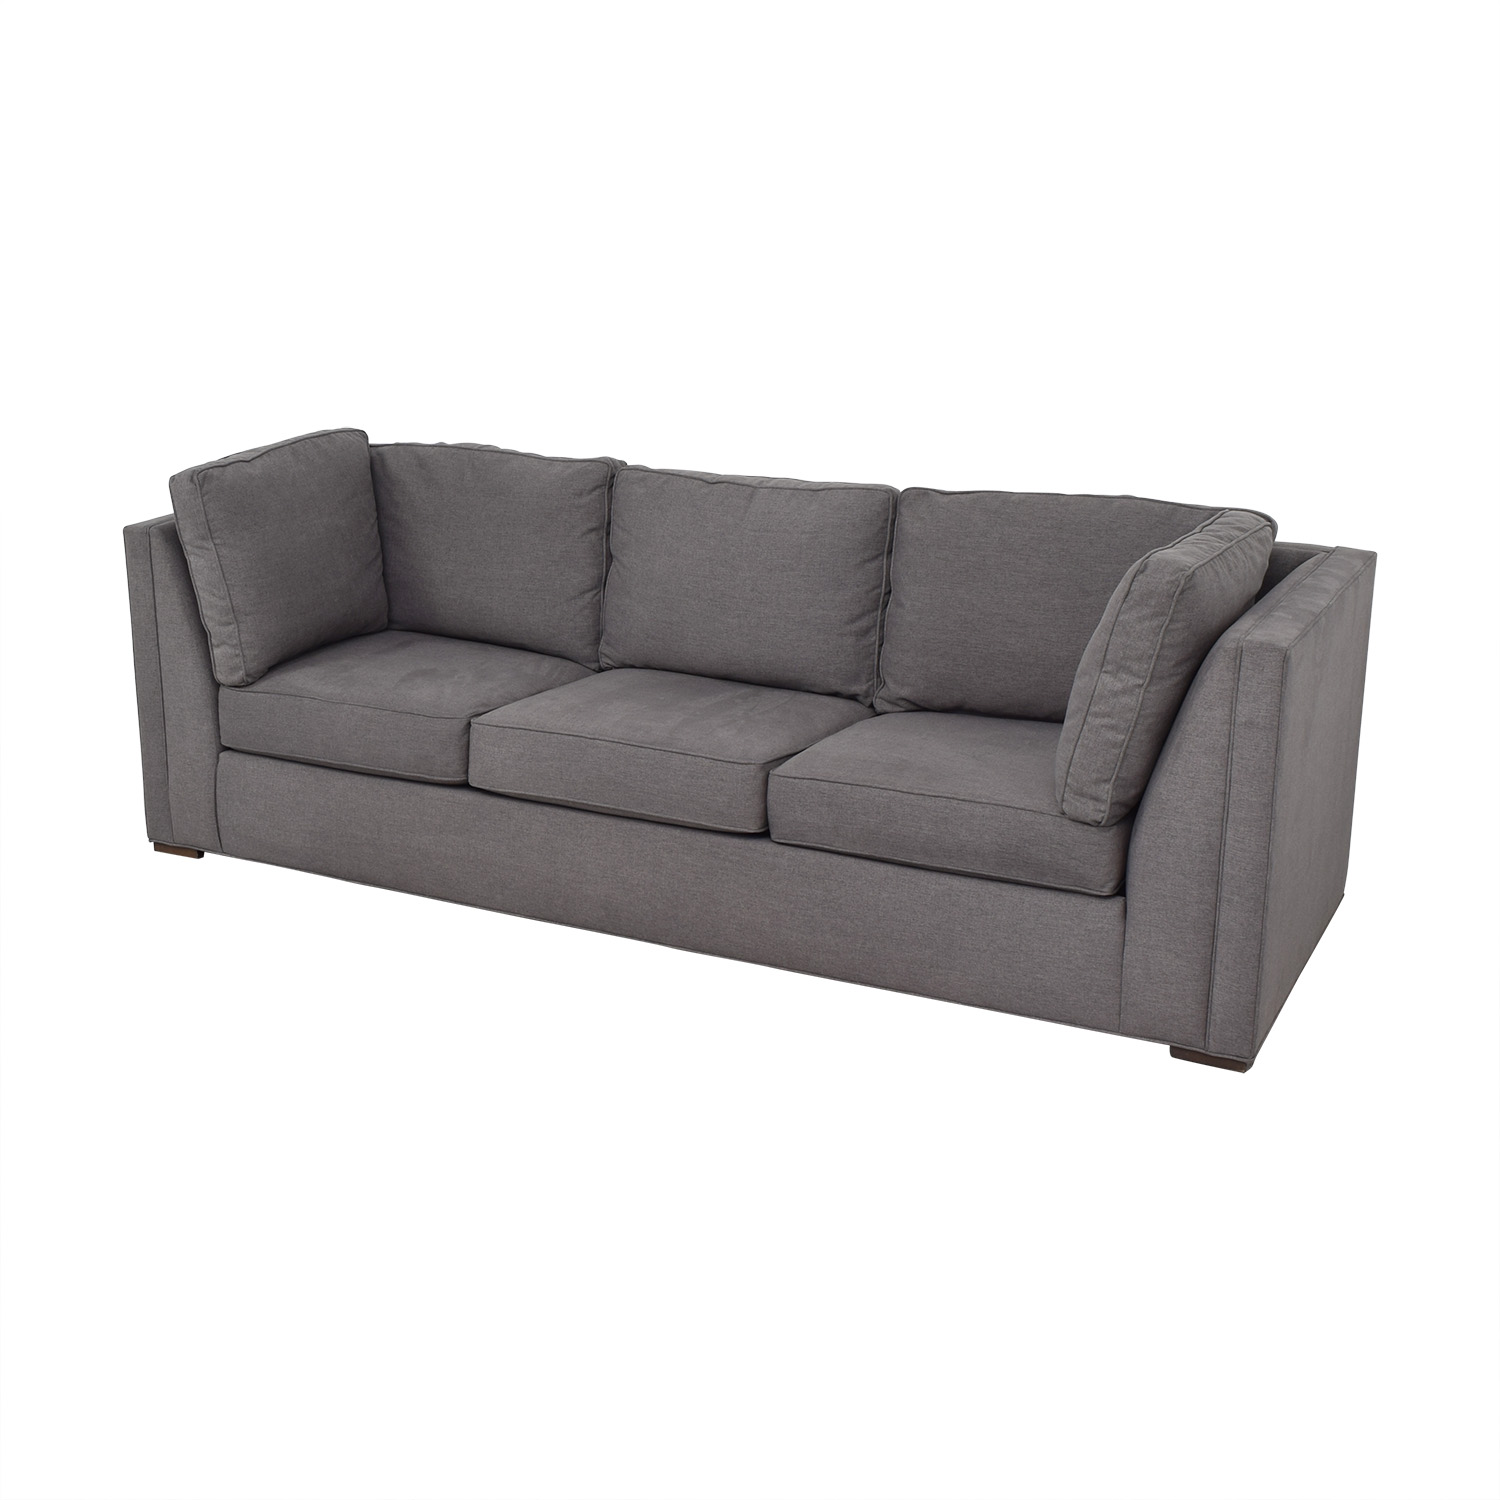 Ethan Allen Meeting Place Sofa / Sofas